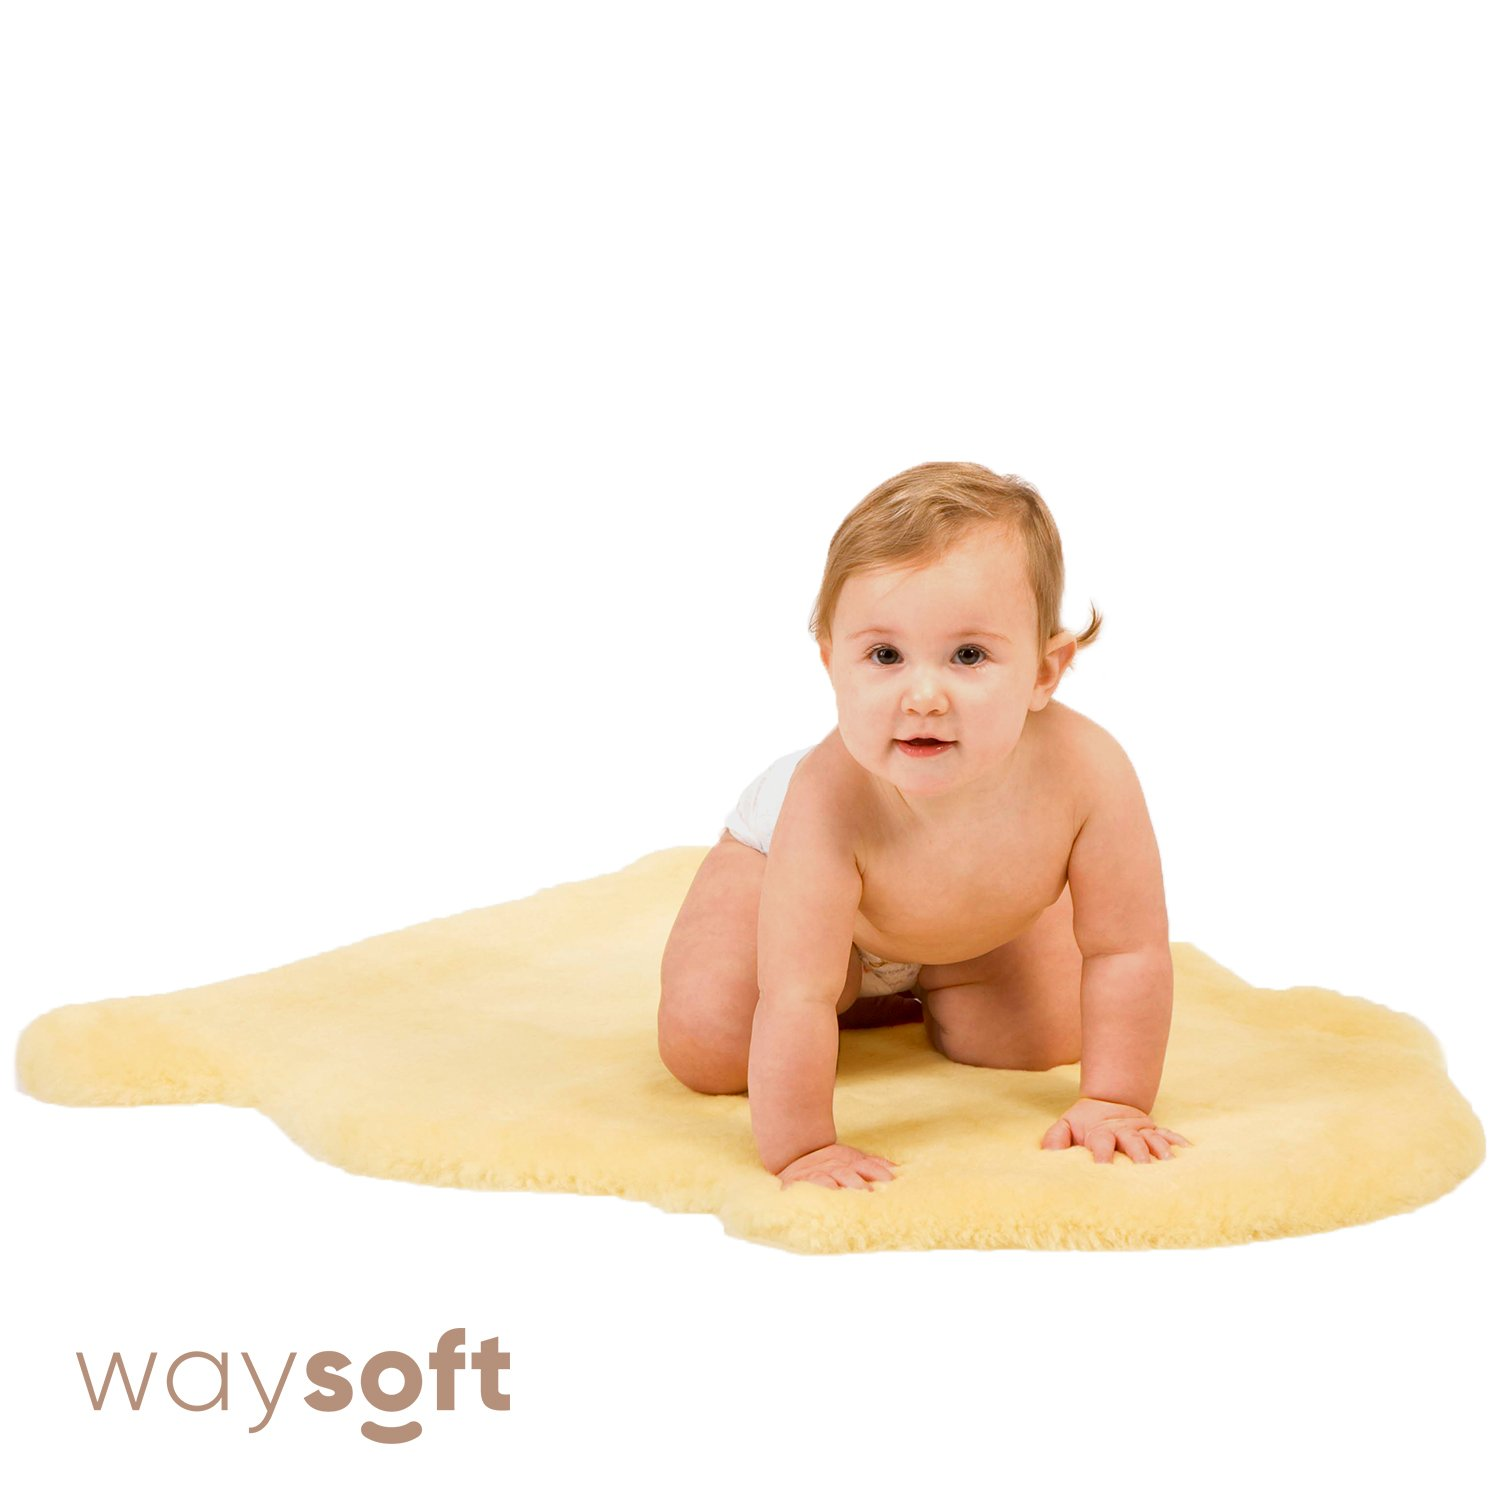 Baby Sheepskin Rug by WaySoft in a Gift Bag, New Zealand Soft Dense Shorn Wool, Hypoallergenic and Oeko-Tex Standard 100 Certified Nursery Rug, 2ft x 3ft